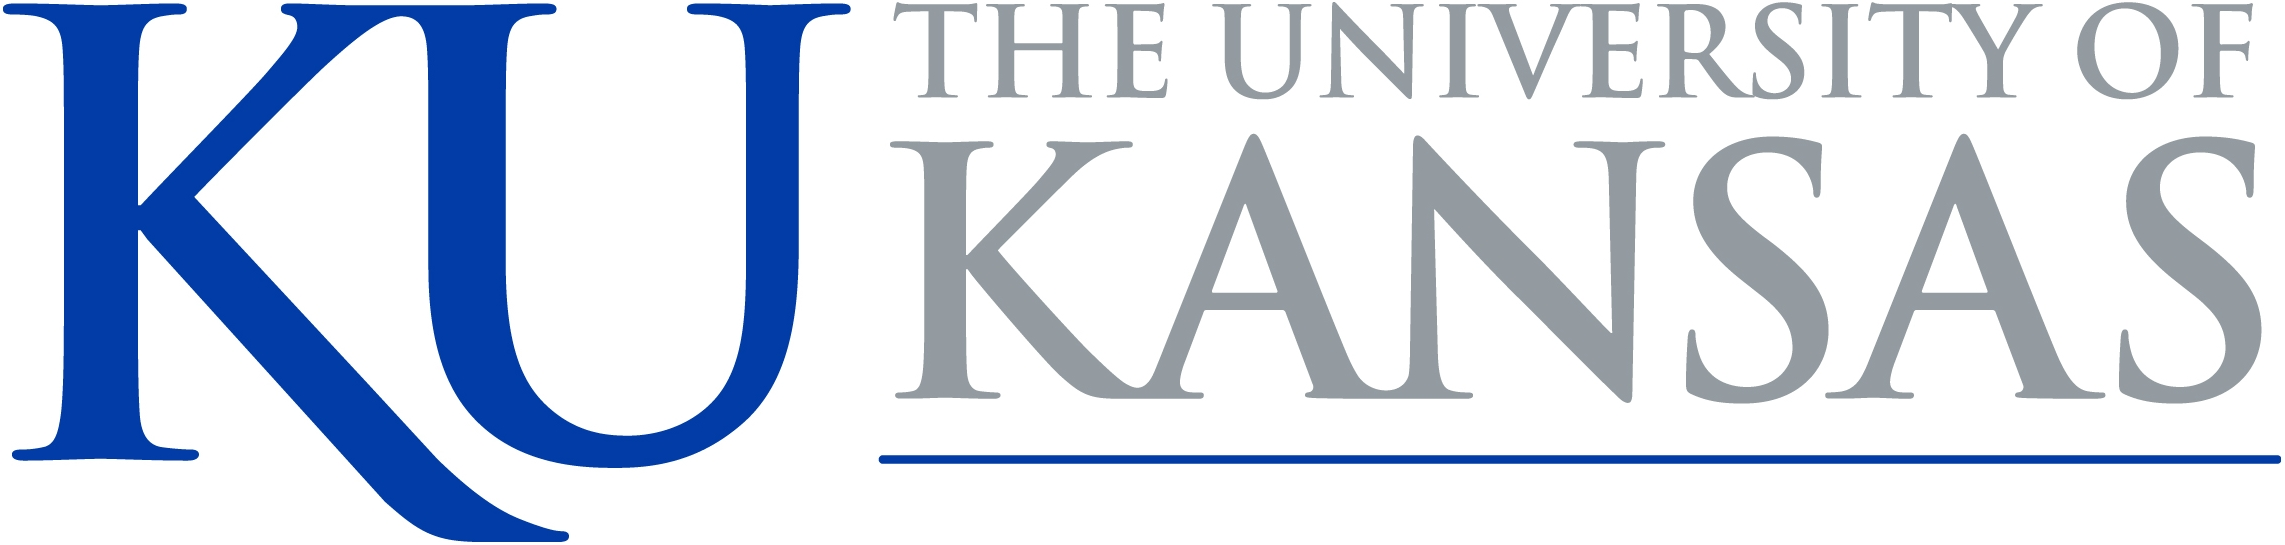 [Shorelight] - The University of Kansas